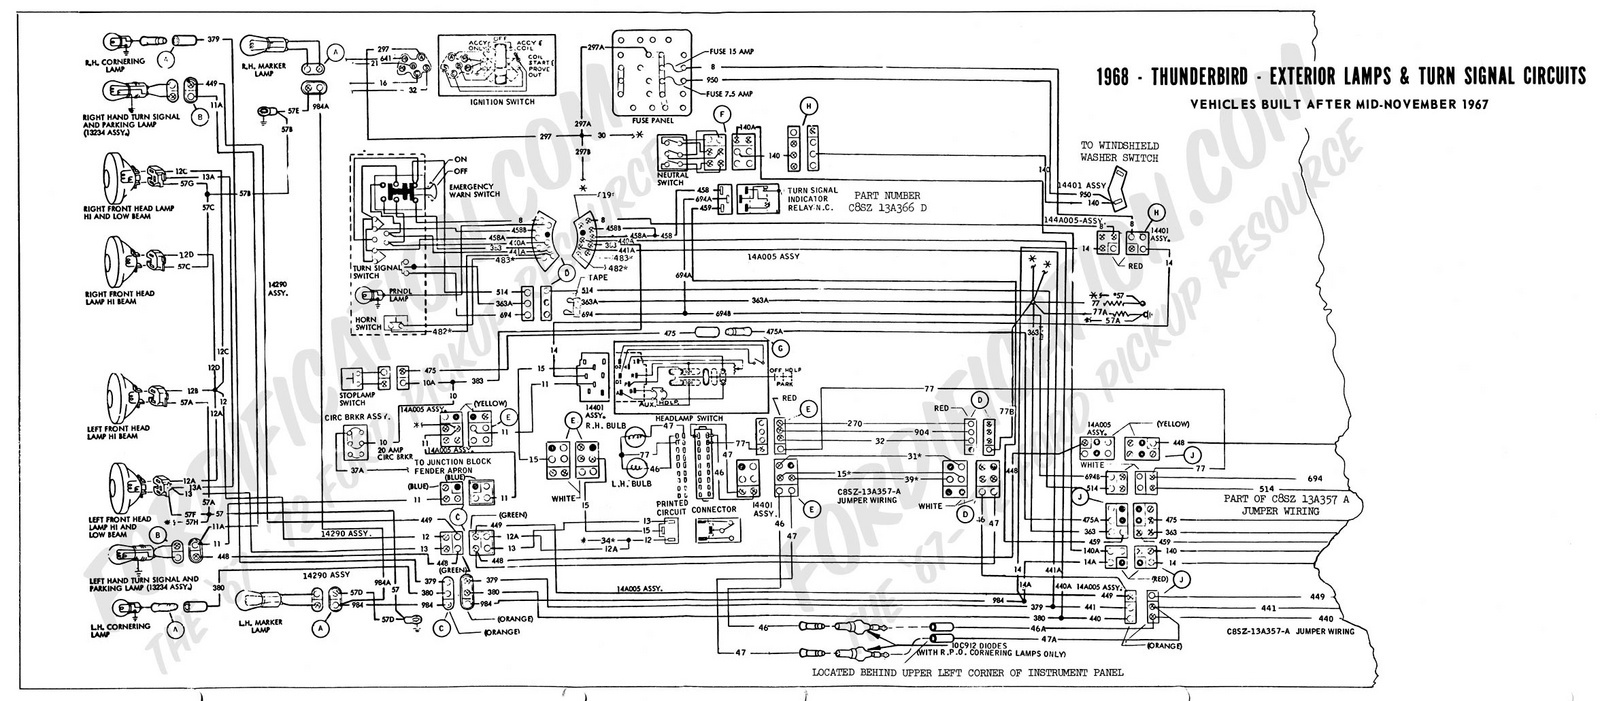 1968 Thunderbird Wiring Diagram 31 Images Lincoln Continental Pic 8255326715796255586 1600x1200 Ford Questions 68 Oil Pan Wont Come Out